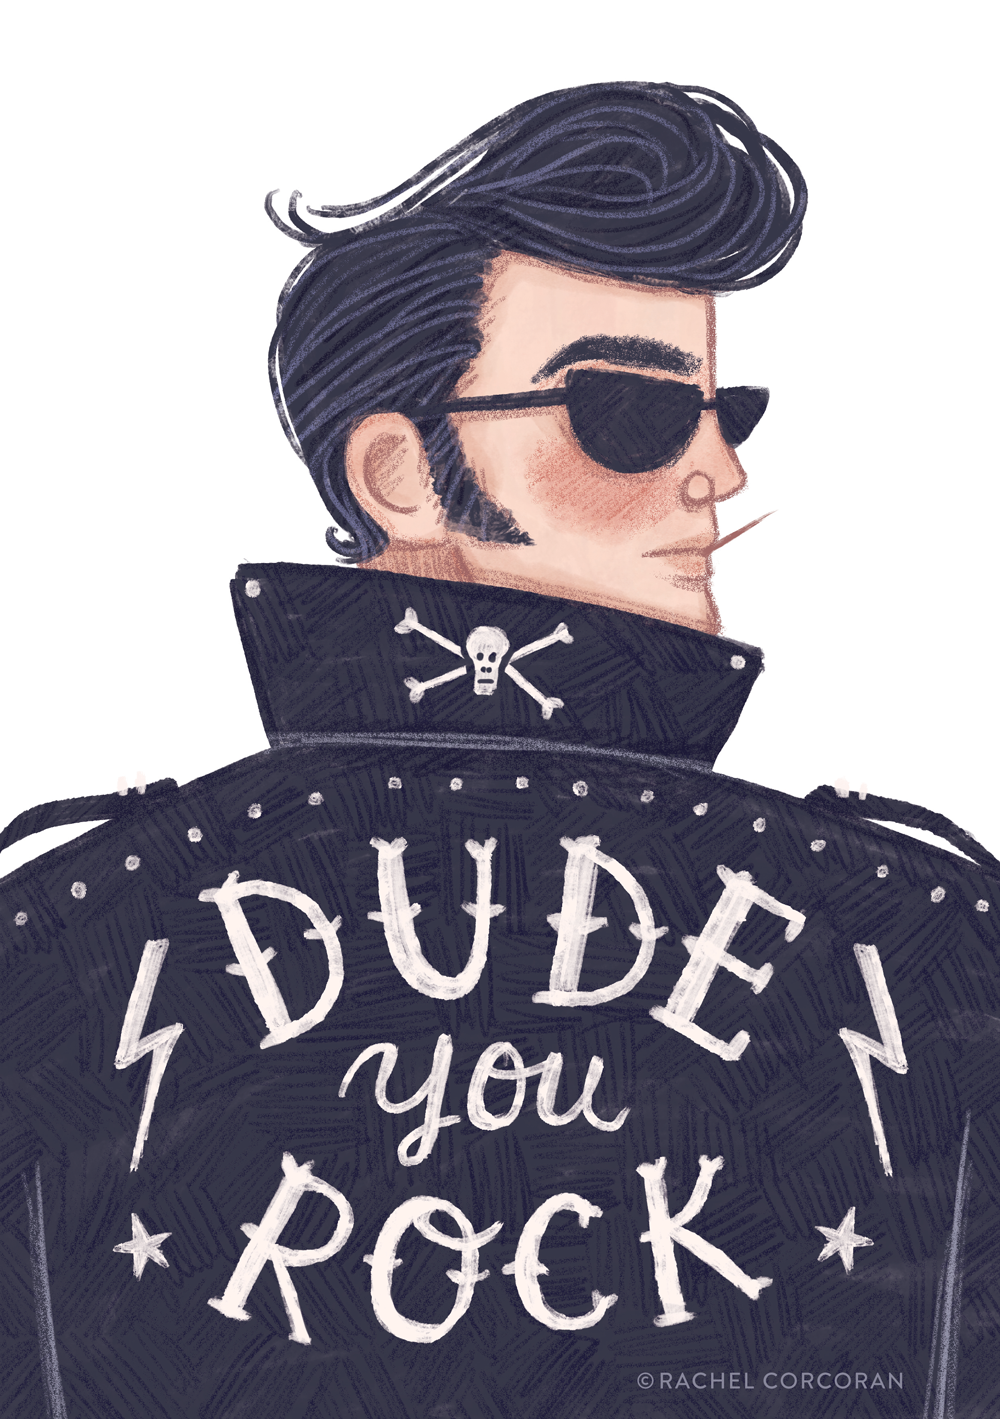 Dude You Rock illustration by Rachel Corcoran